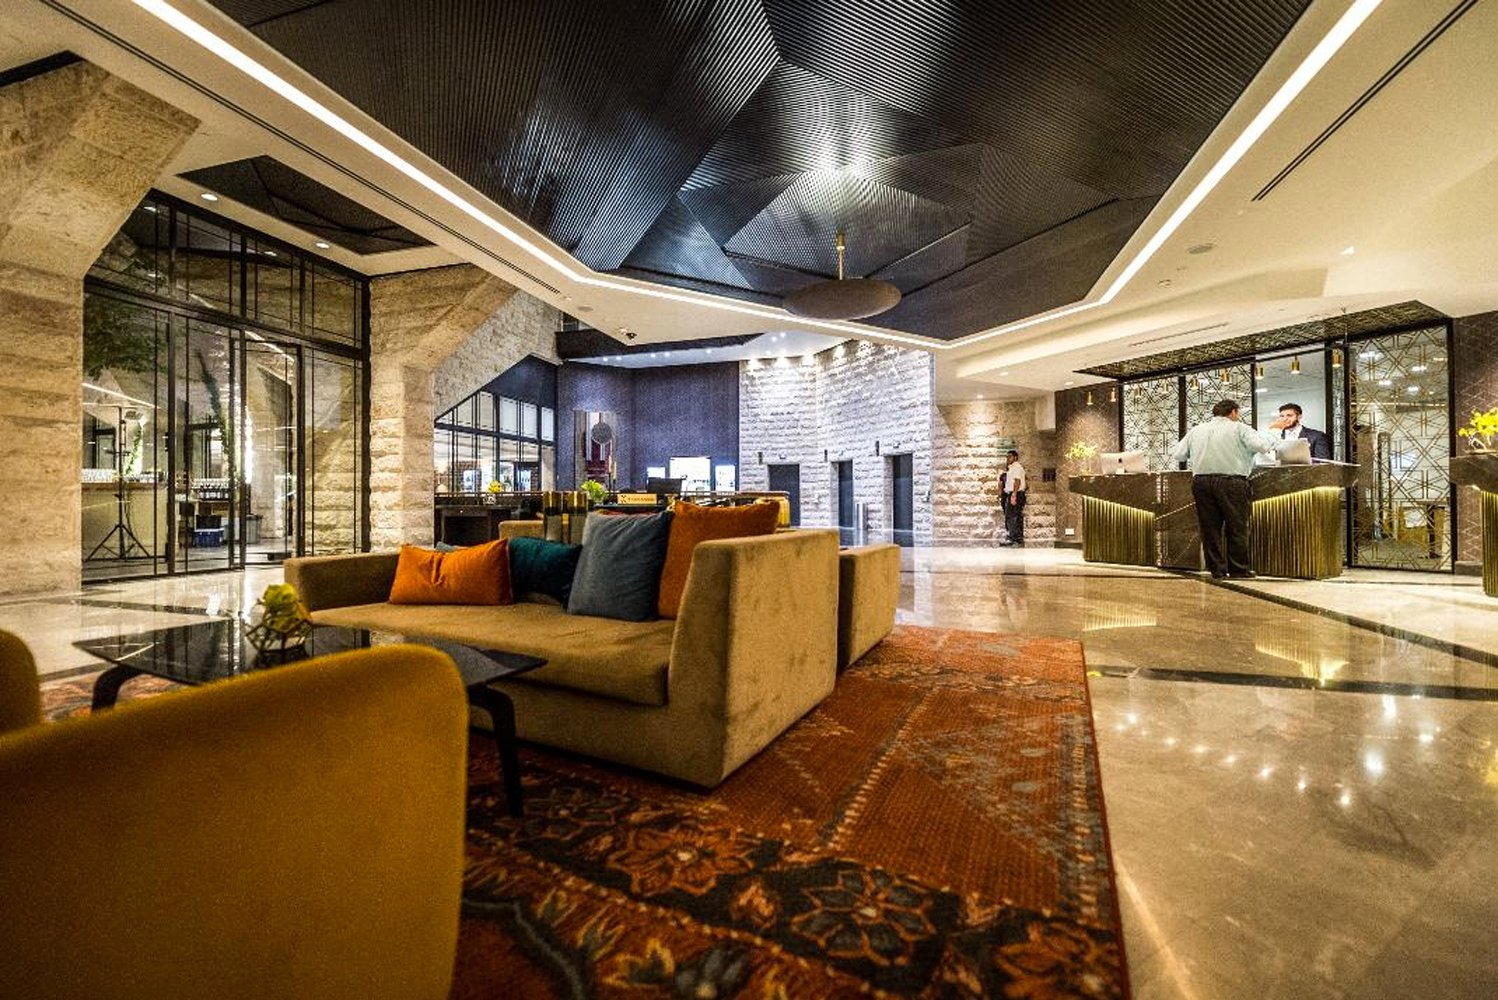 The Inbal Hotel in Jerusalem completed its new wing and fully renovated public areas.